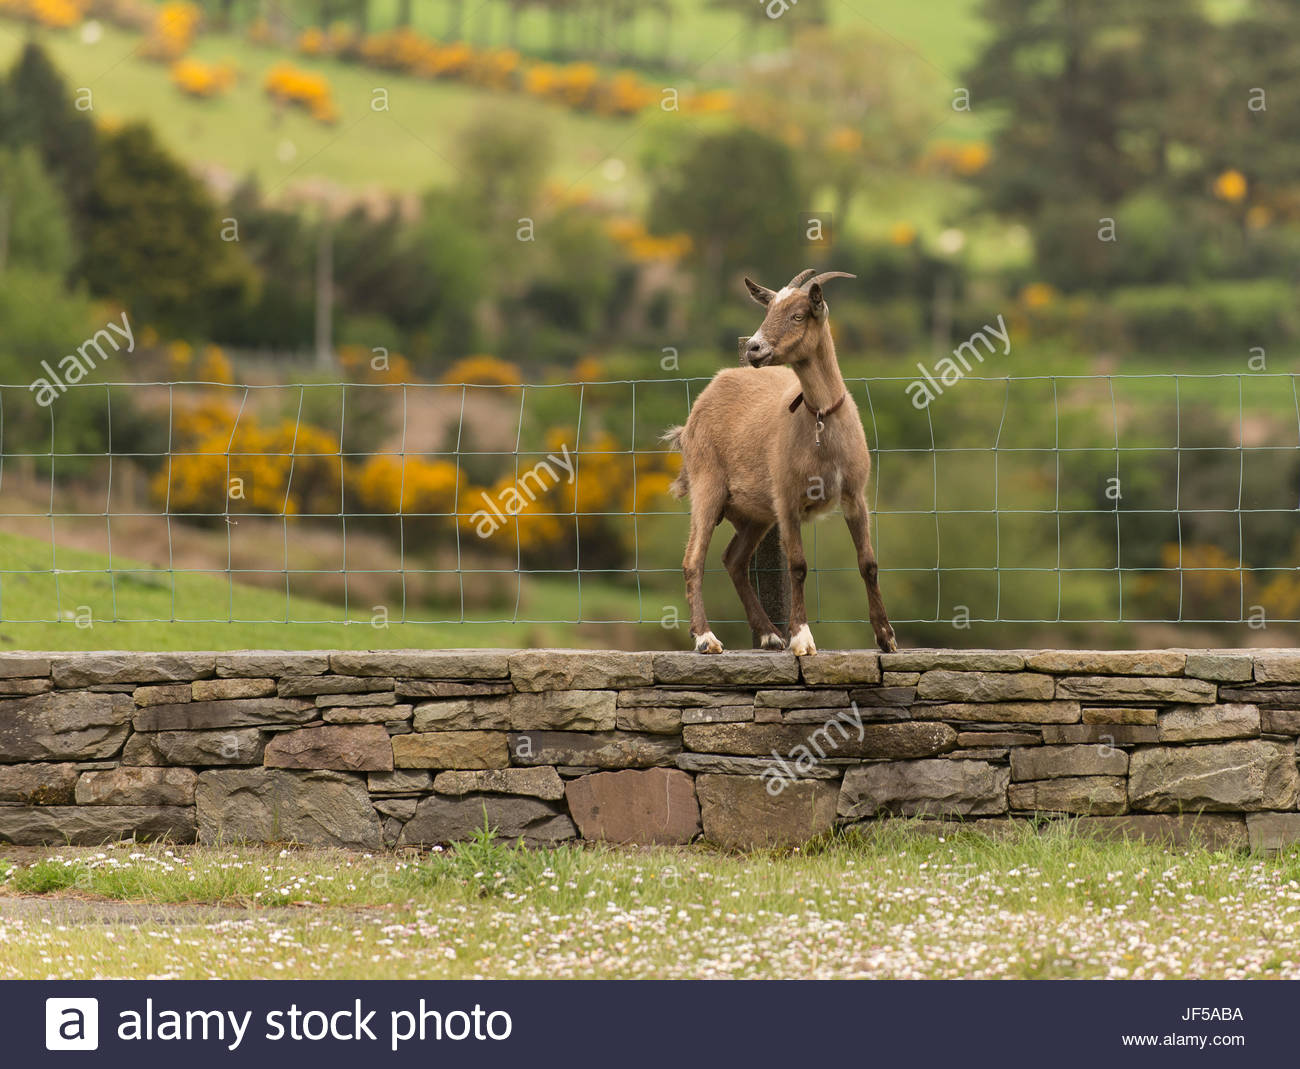 A goat stands on a stone wall next to a fence in County Kerry, Ireland. Stock Photo